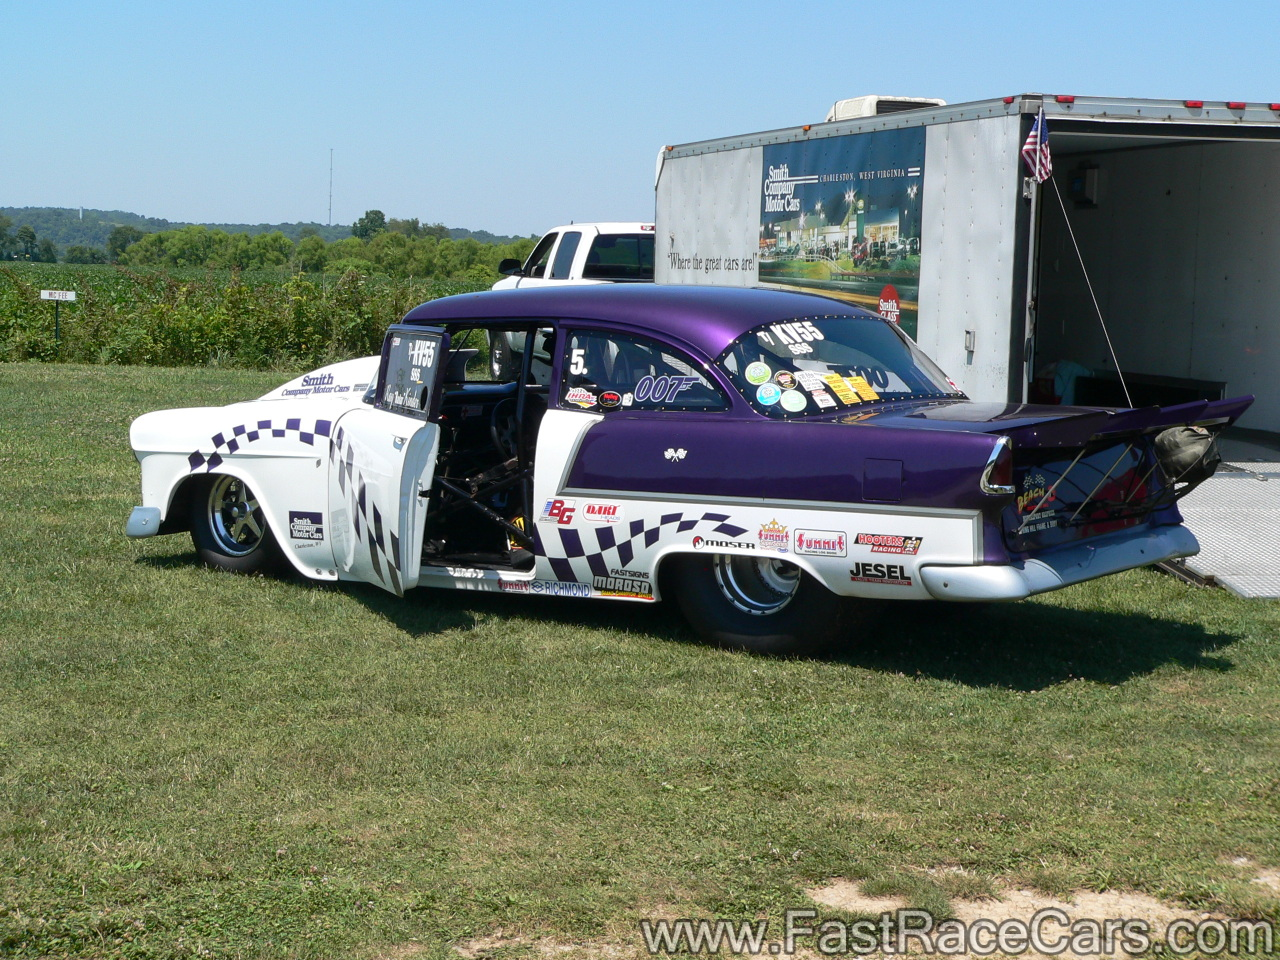 55 Chevy Drag Race Car http://www.fastracecars.com/categories/Drag%20Race%20Cars/55%20-%2057%20Chevrolets/large/shoebox-8.html